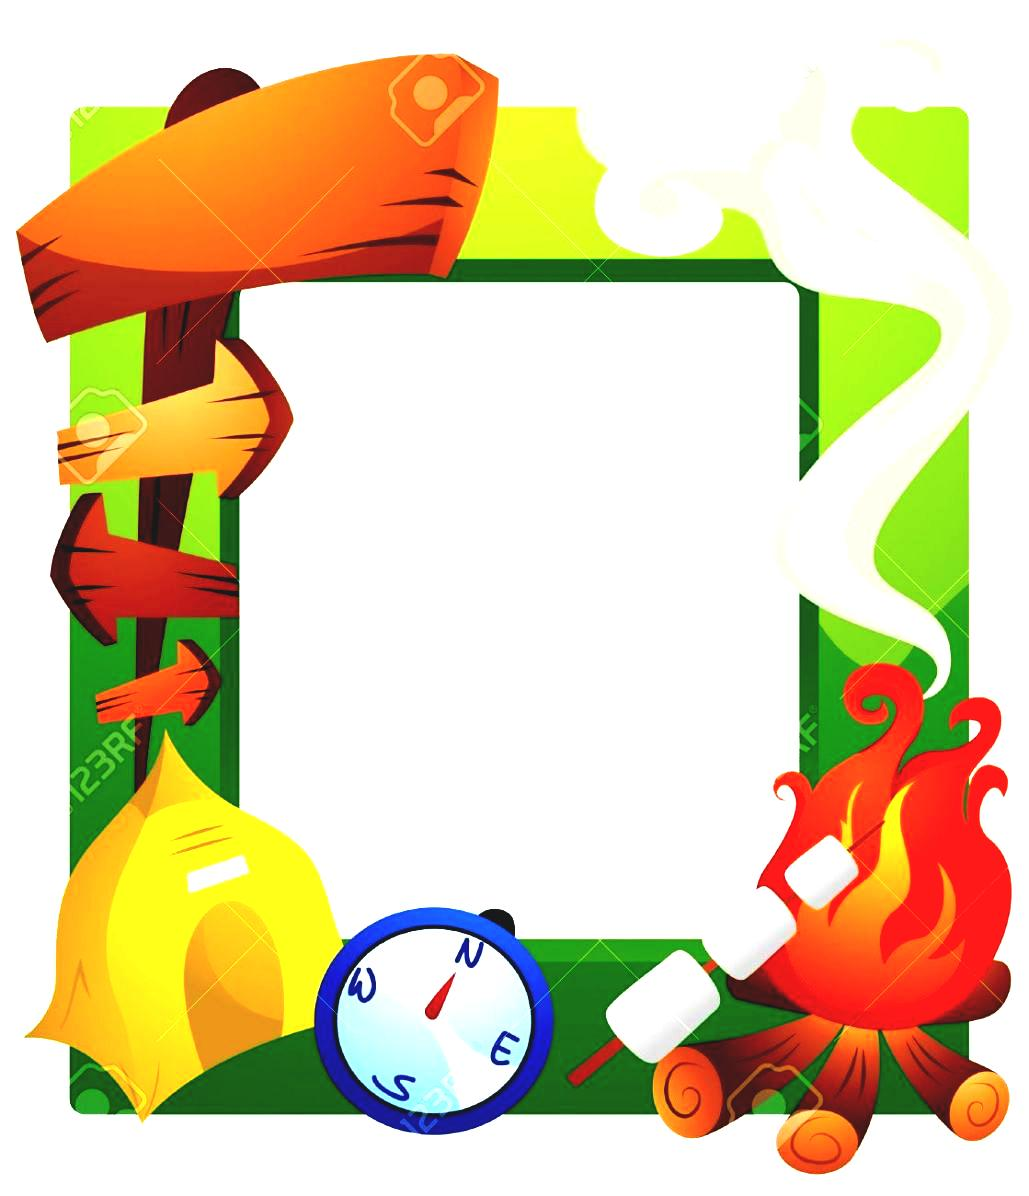 Camping Clipart Repin Image Royalty Free Rf On Pinterest Camp Fire.